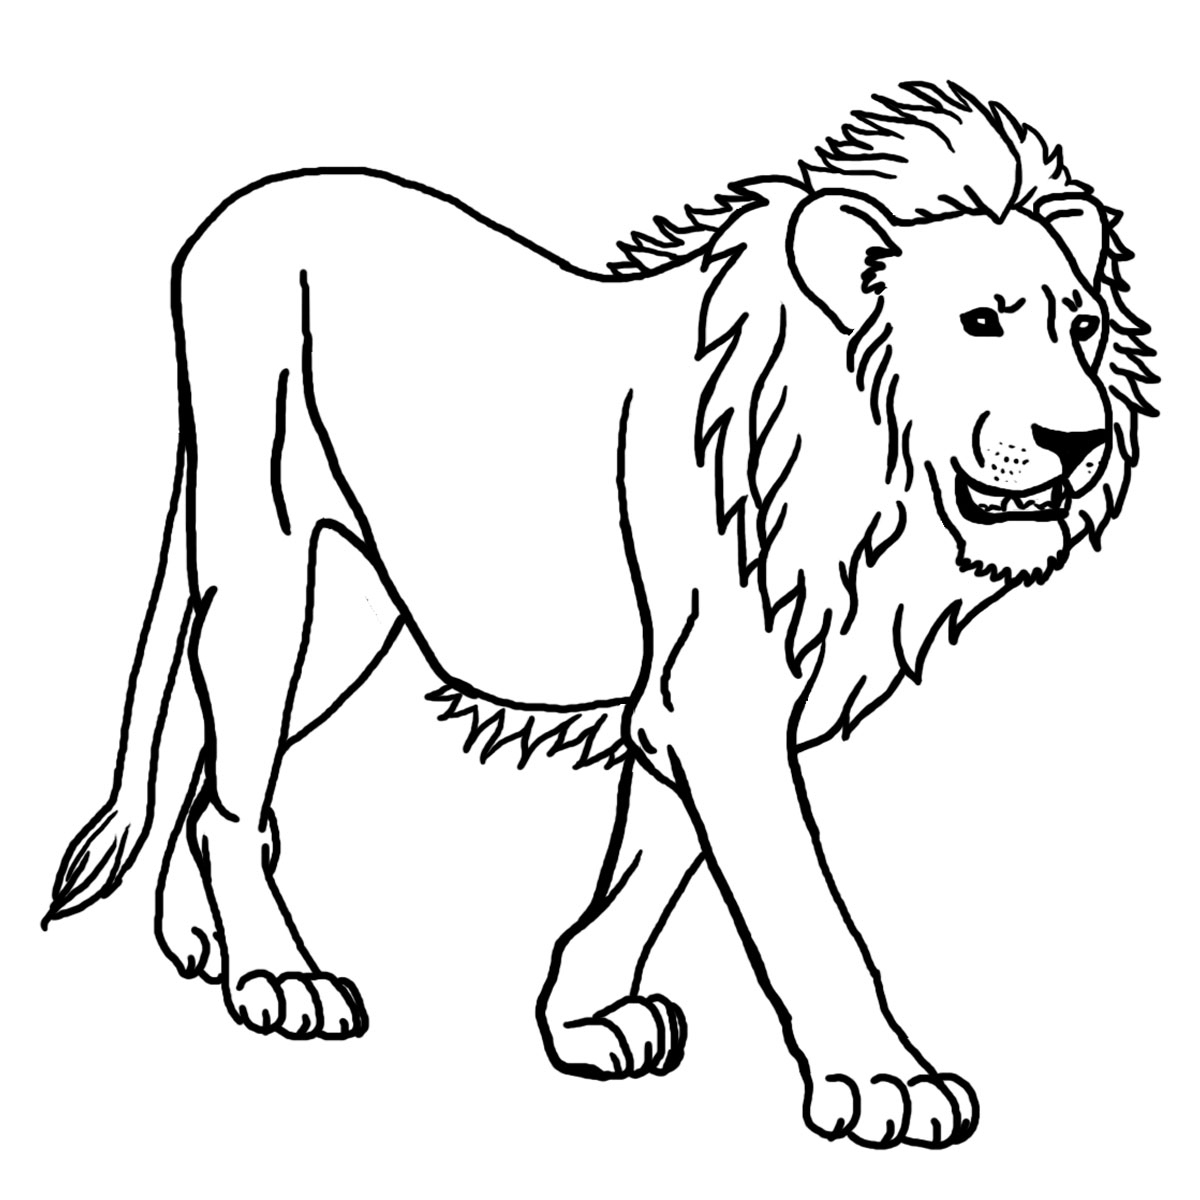 Free Printable Lion Coloring Pages For Kids - Clip Art Library - Free Printable Picture Of A Lion